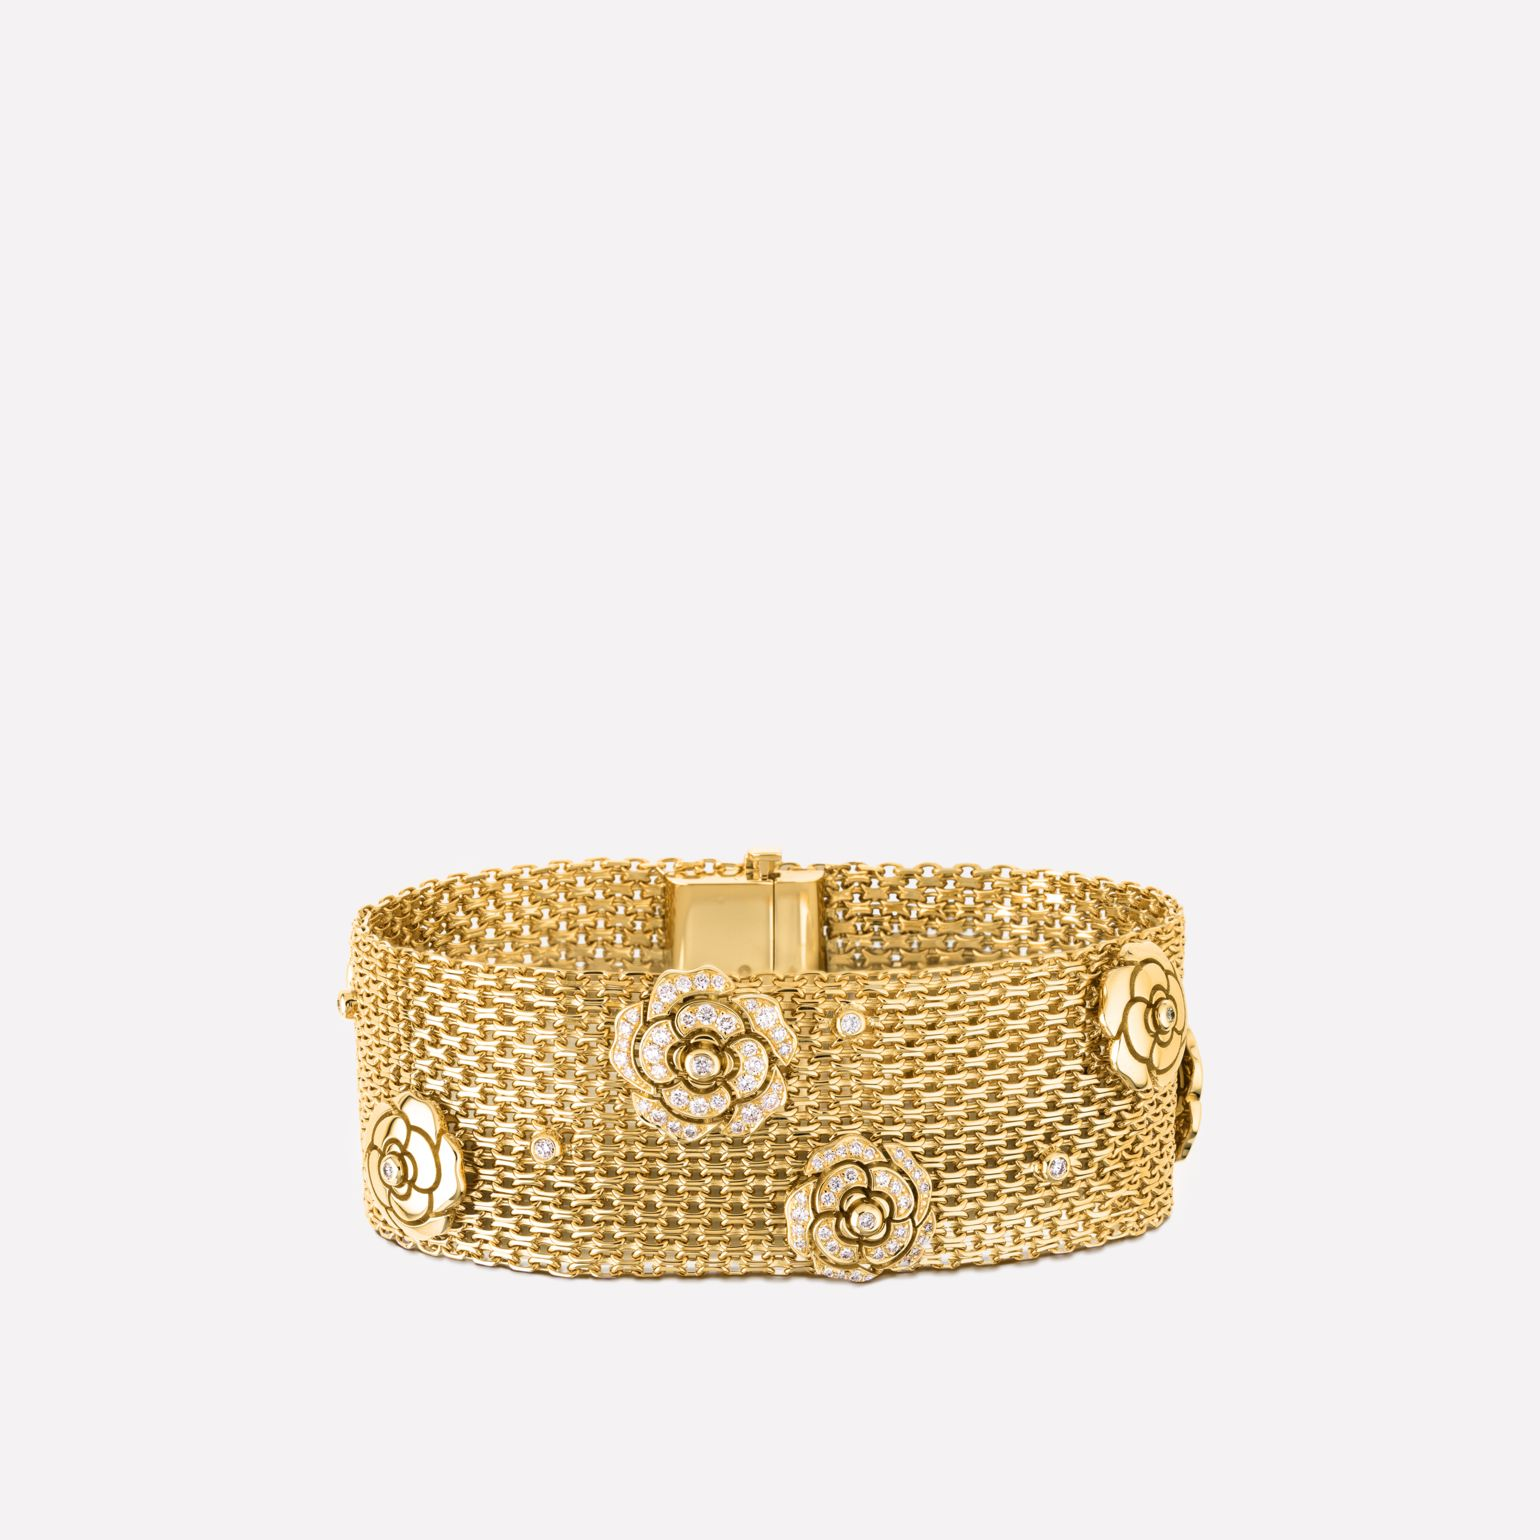 Camélia bracelet Impression Camélia bracelet in 18K yellow gold and diamonds